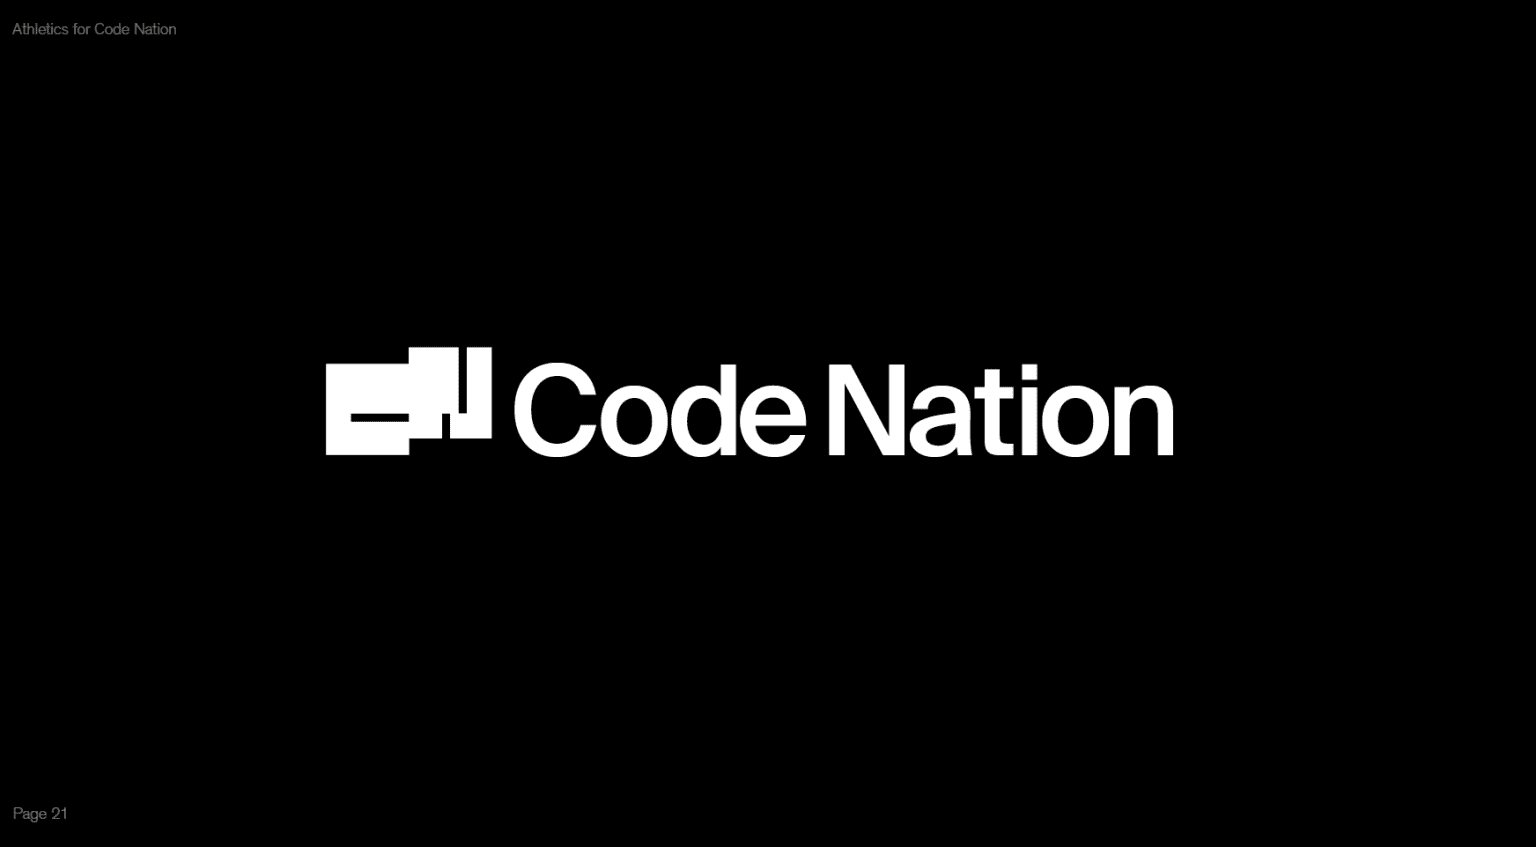 Code Nation: Equity Through Tech Education